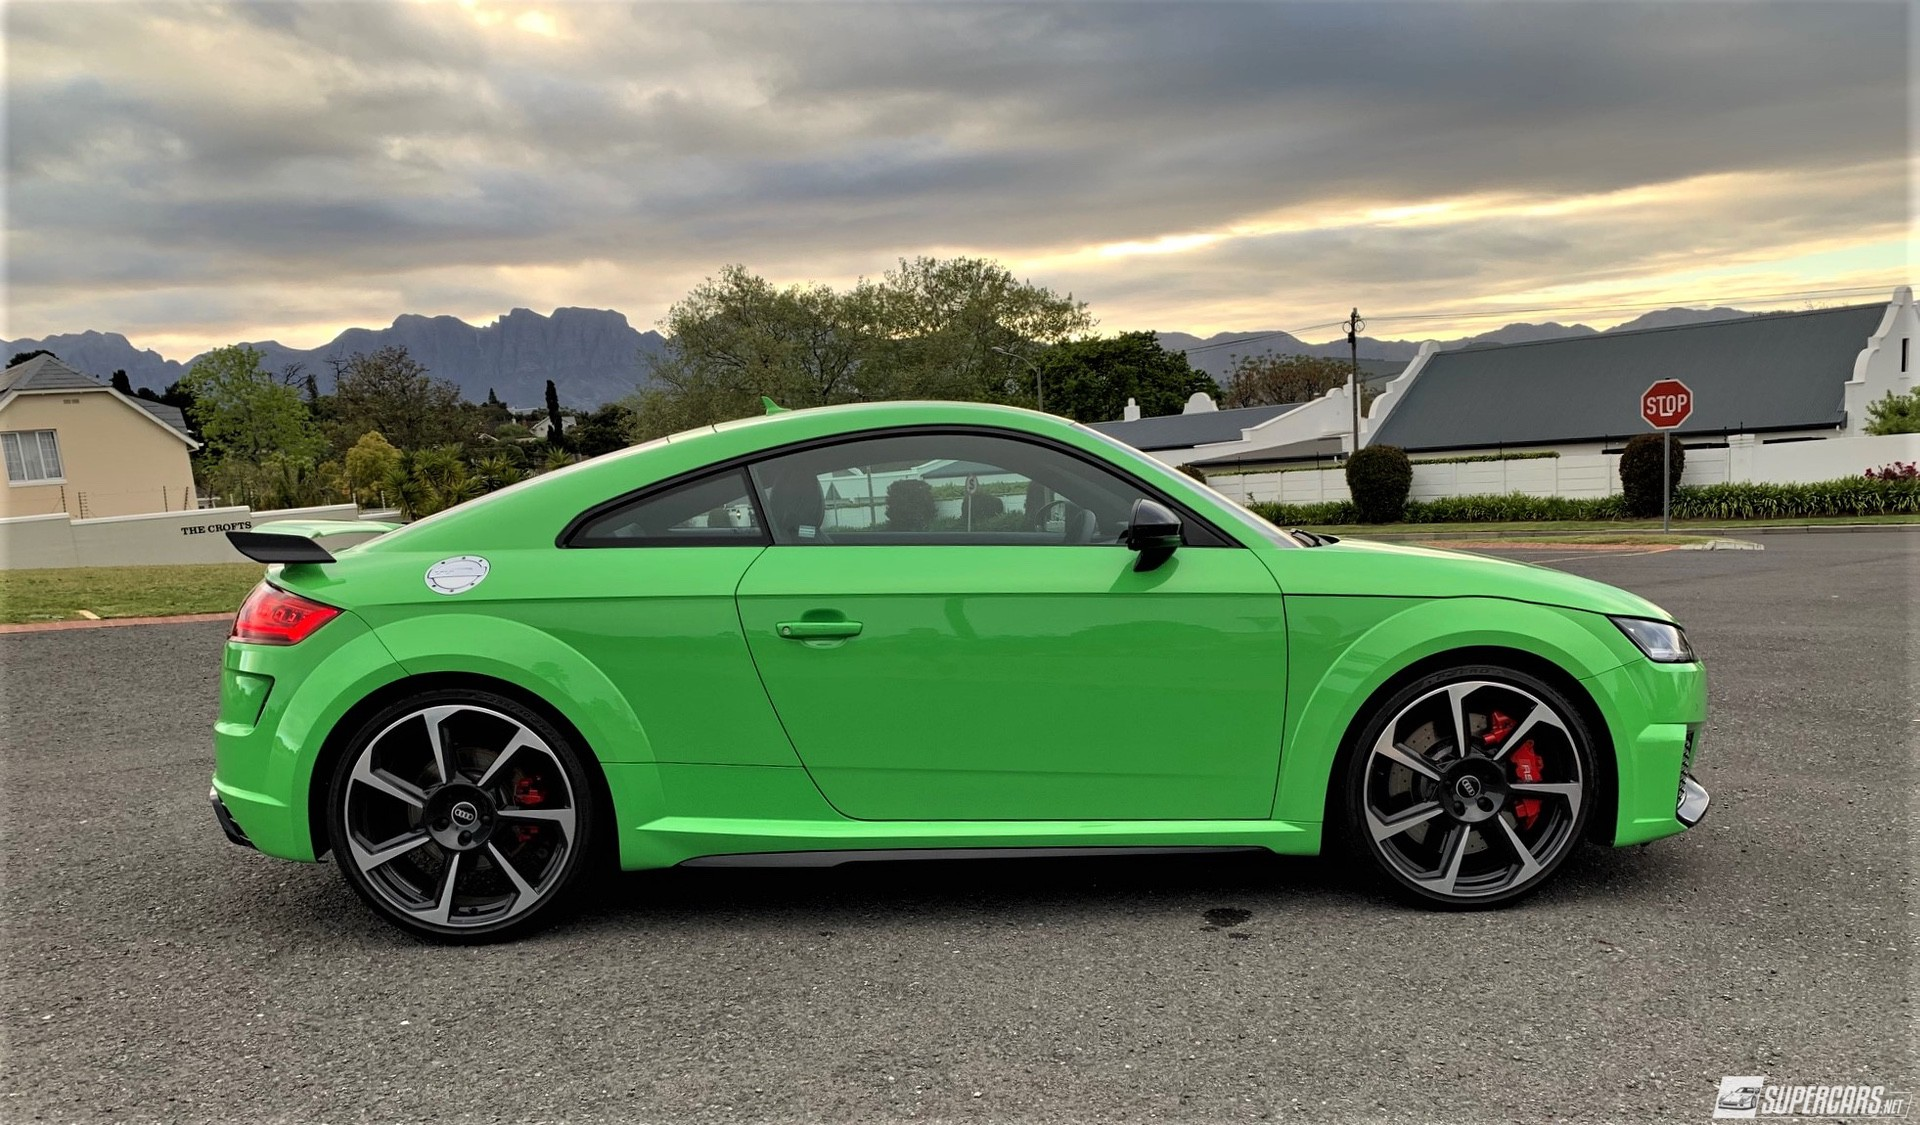 Side view of green 2022 Audi TT RS